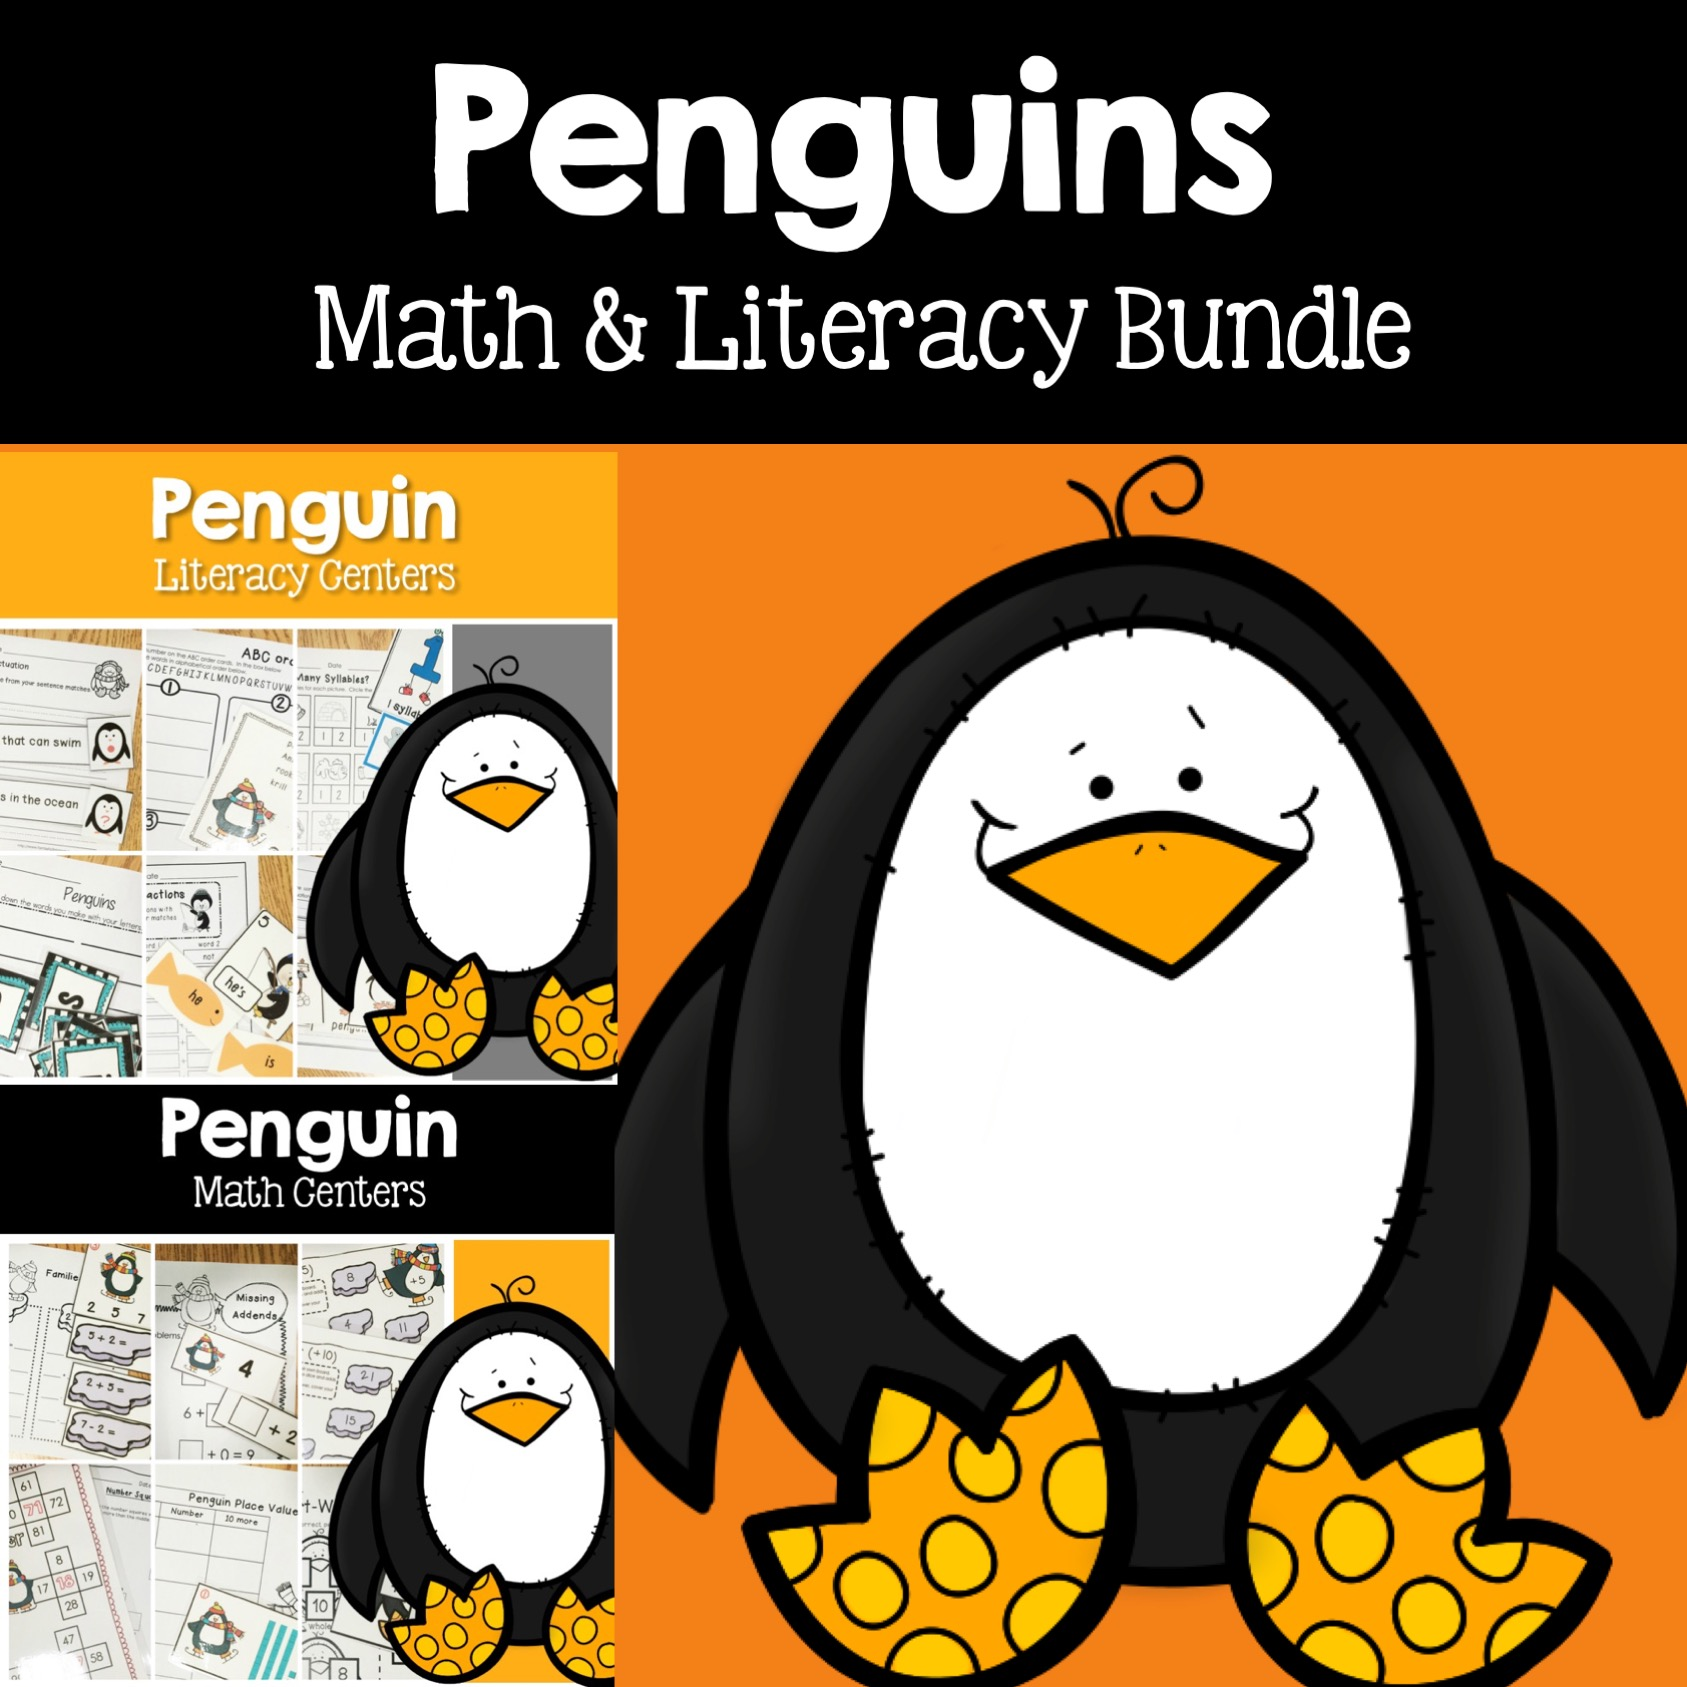 Penguin math and literacy bundle